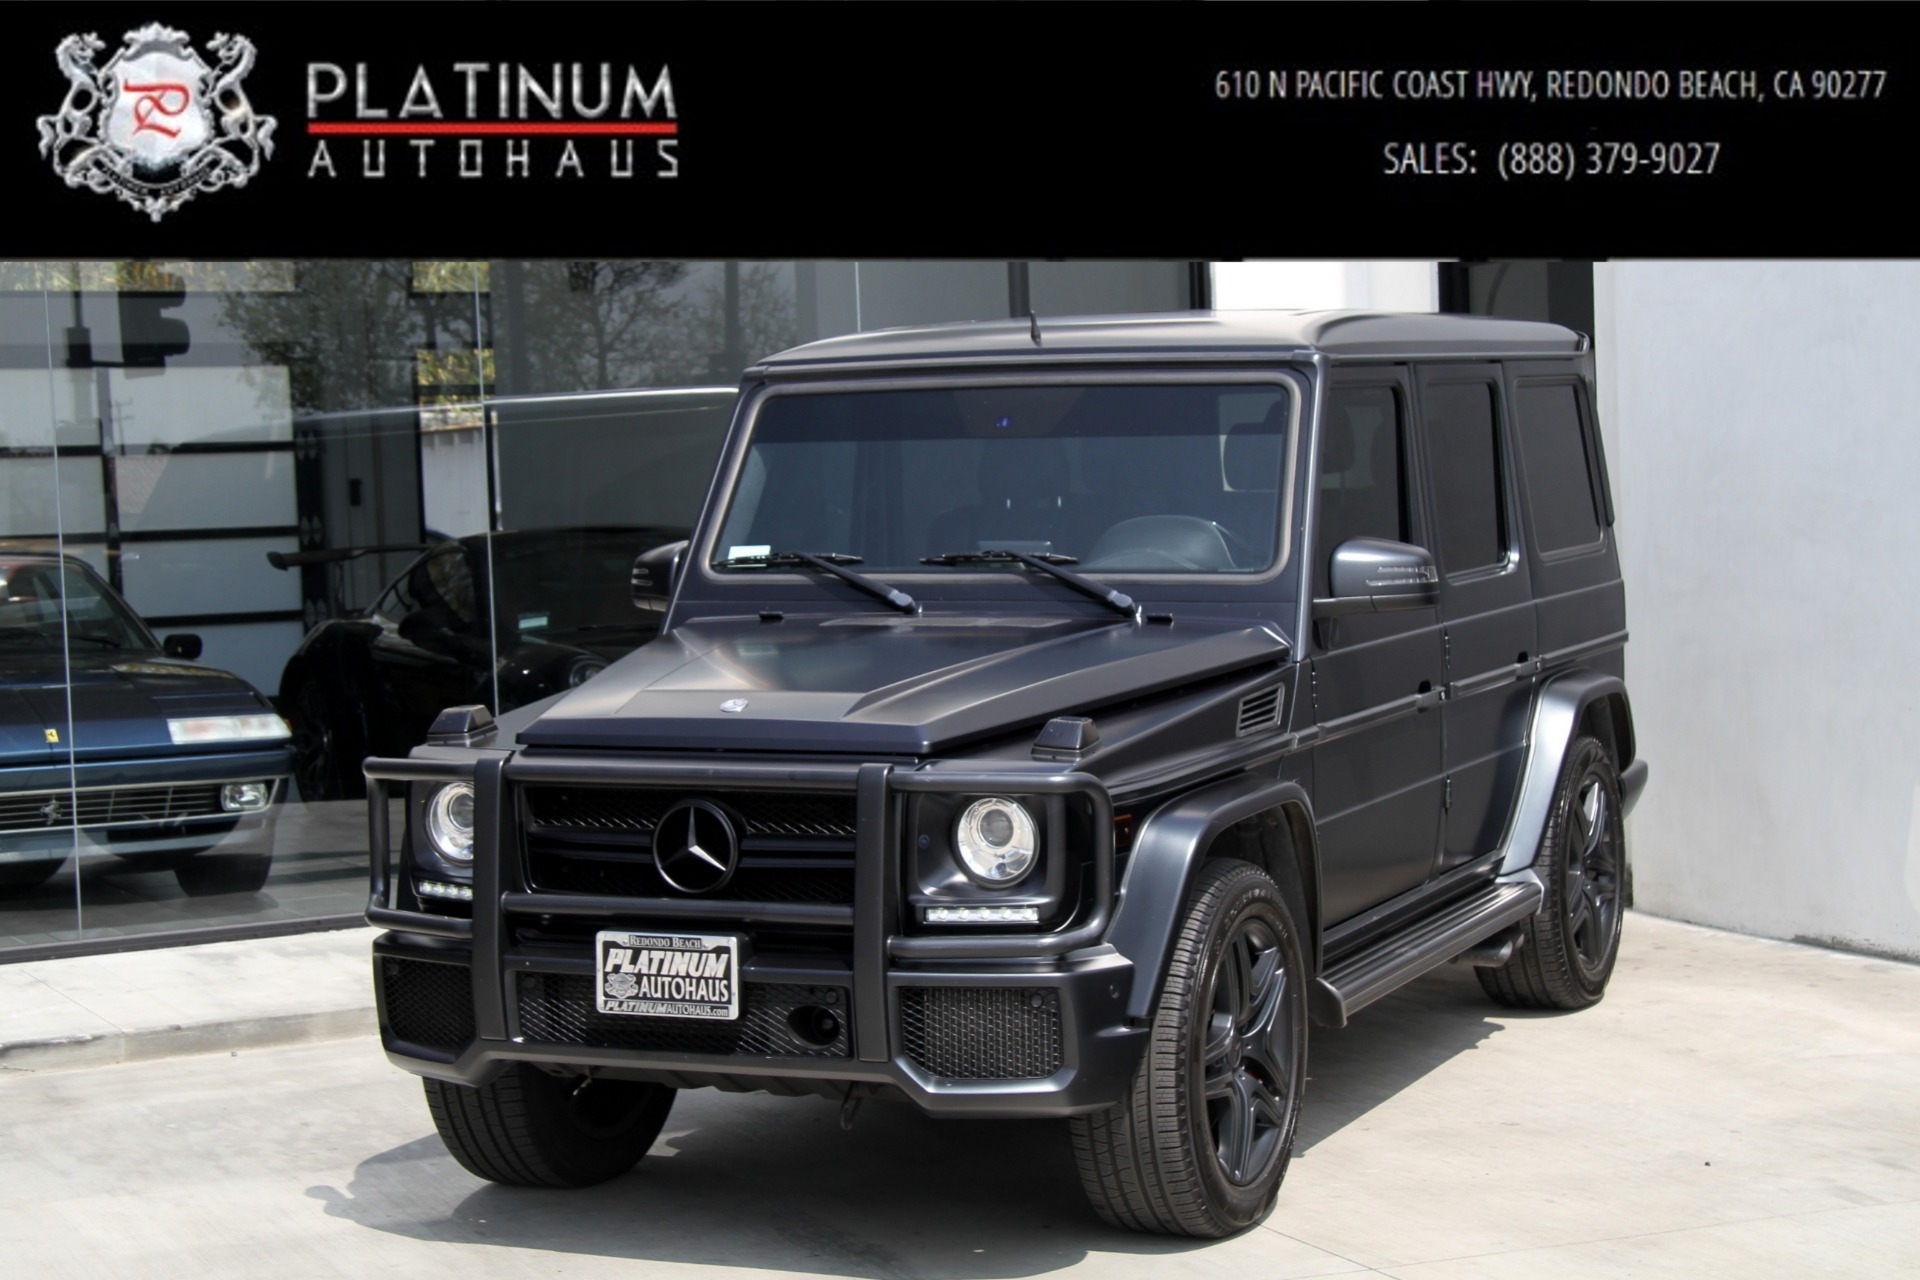 2014 mercedes benz g class g 63 amg factory matte paint stock 6134a for sale near. Black Bedroom Furniture Sets. Home Design Ideas